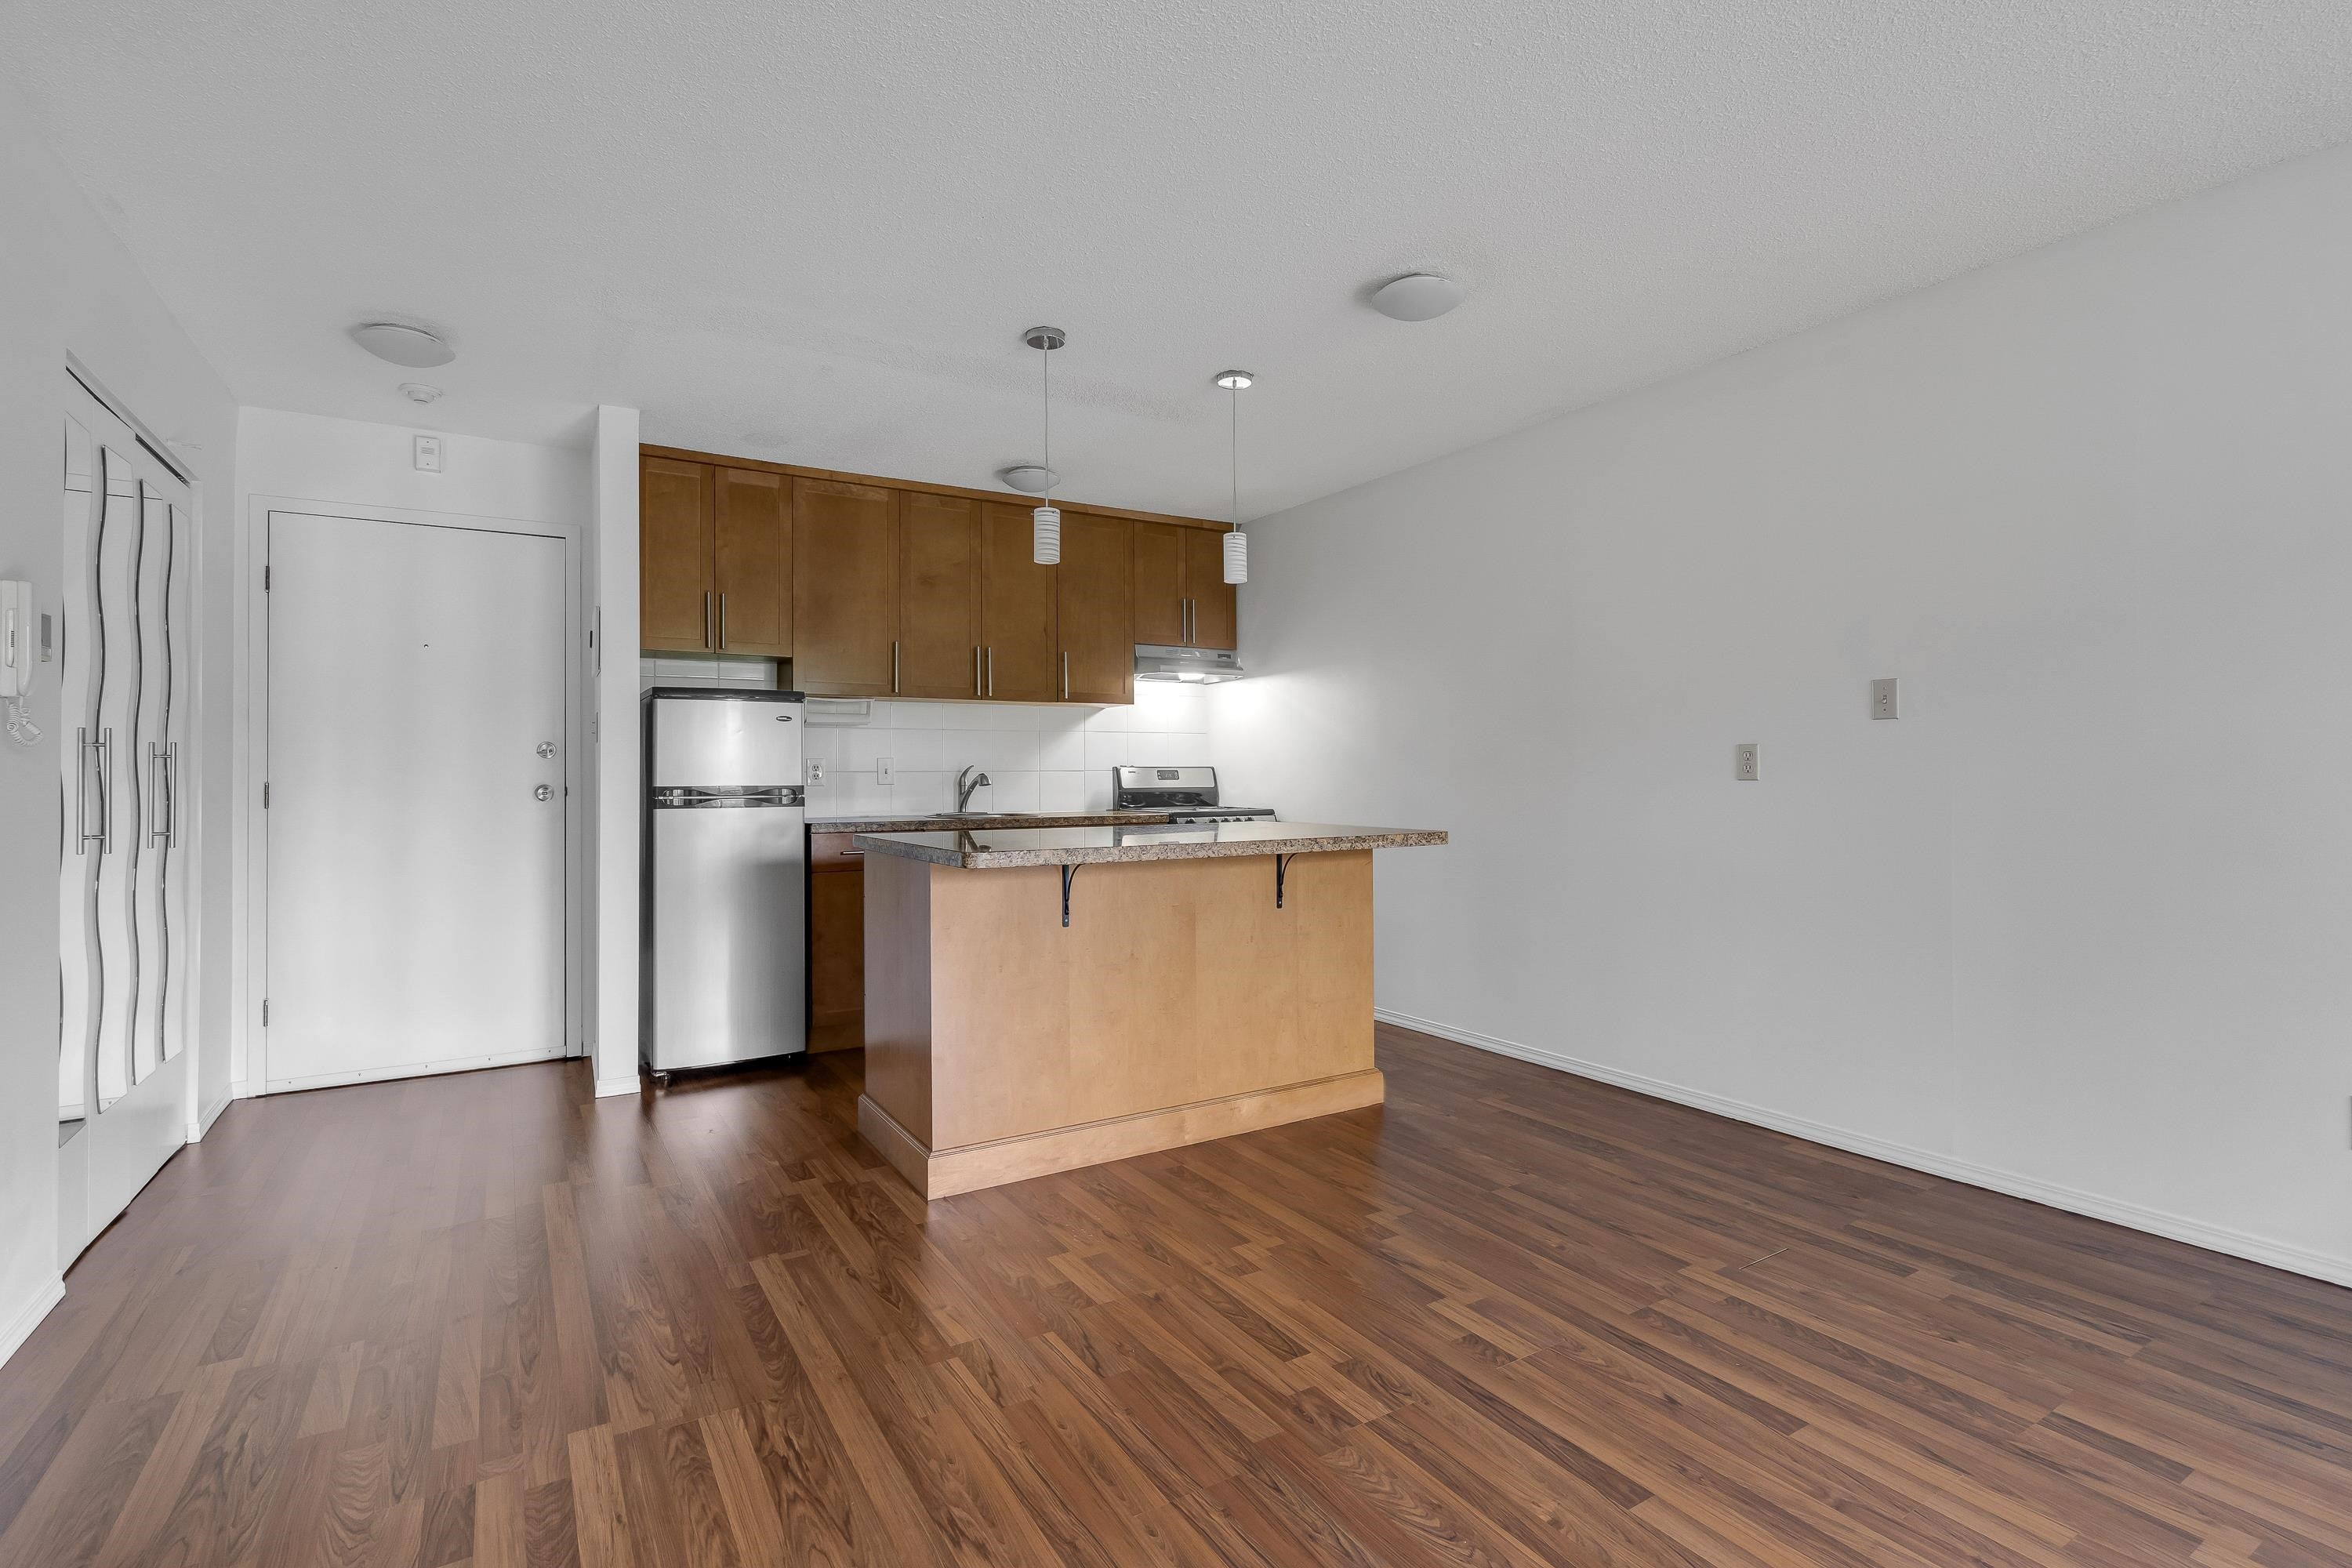 208 270 WEST 3RD STREET - Lower Lonsdale Apartment/Condo for sale, 1 Bedroom (R2615758) - #8